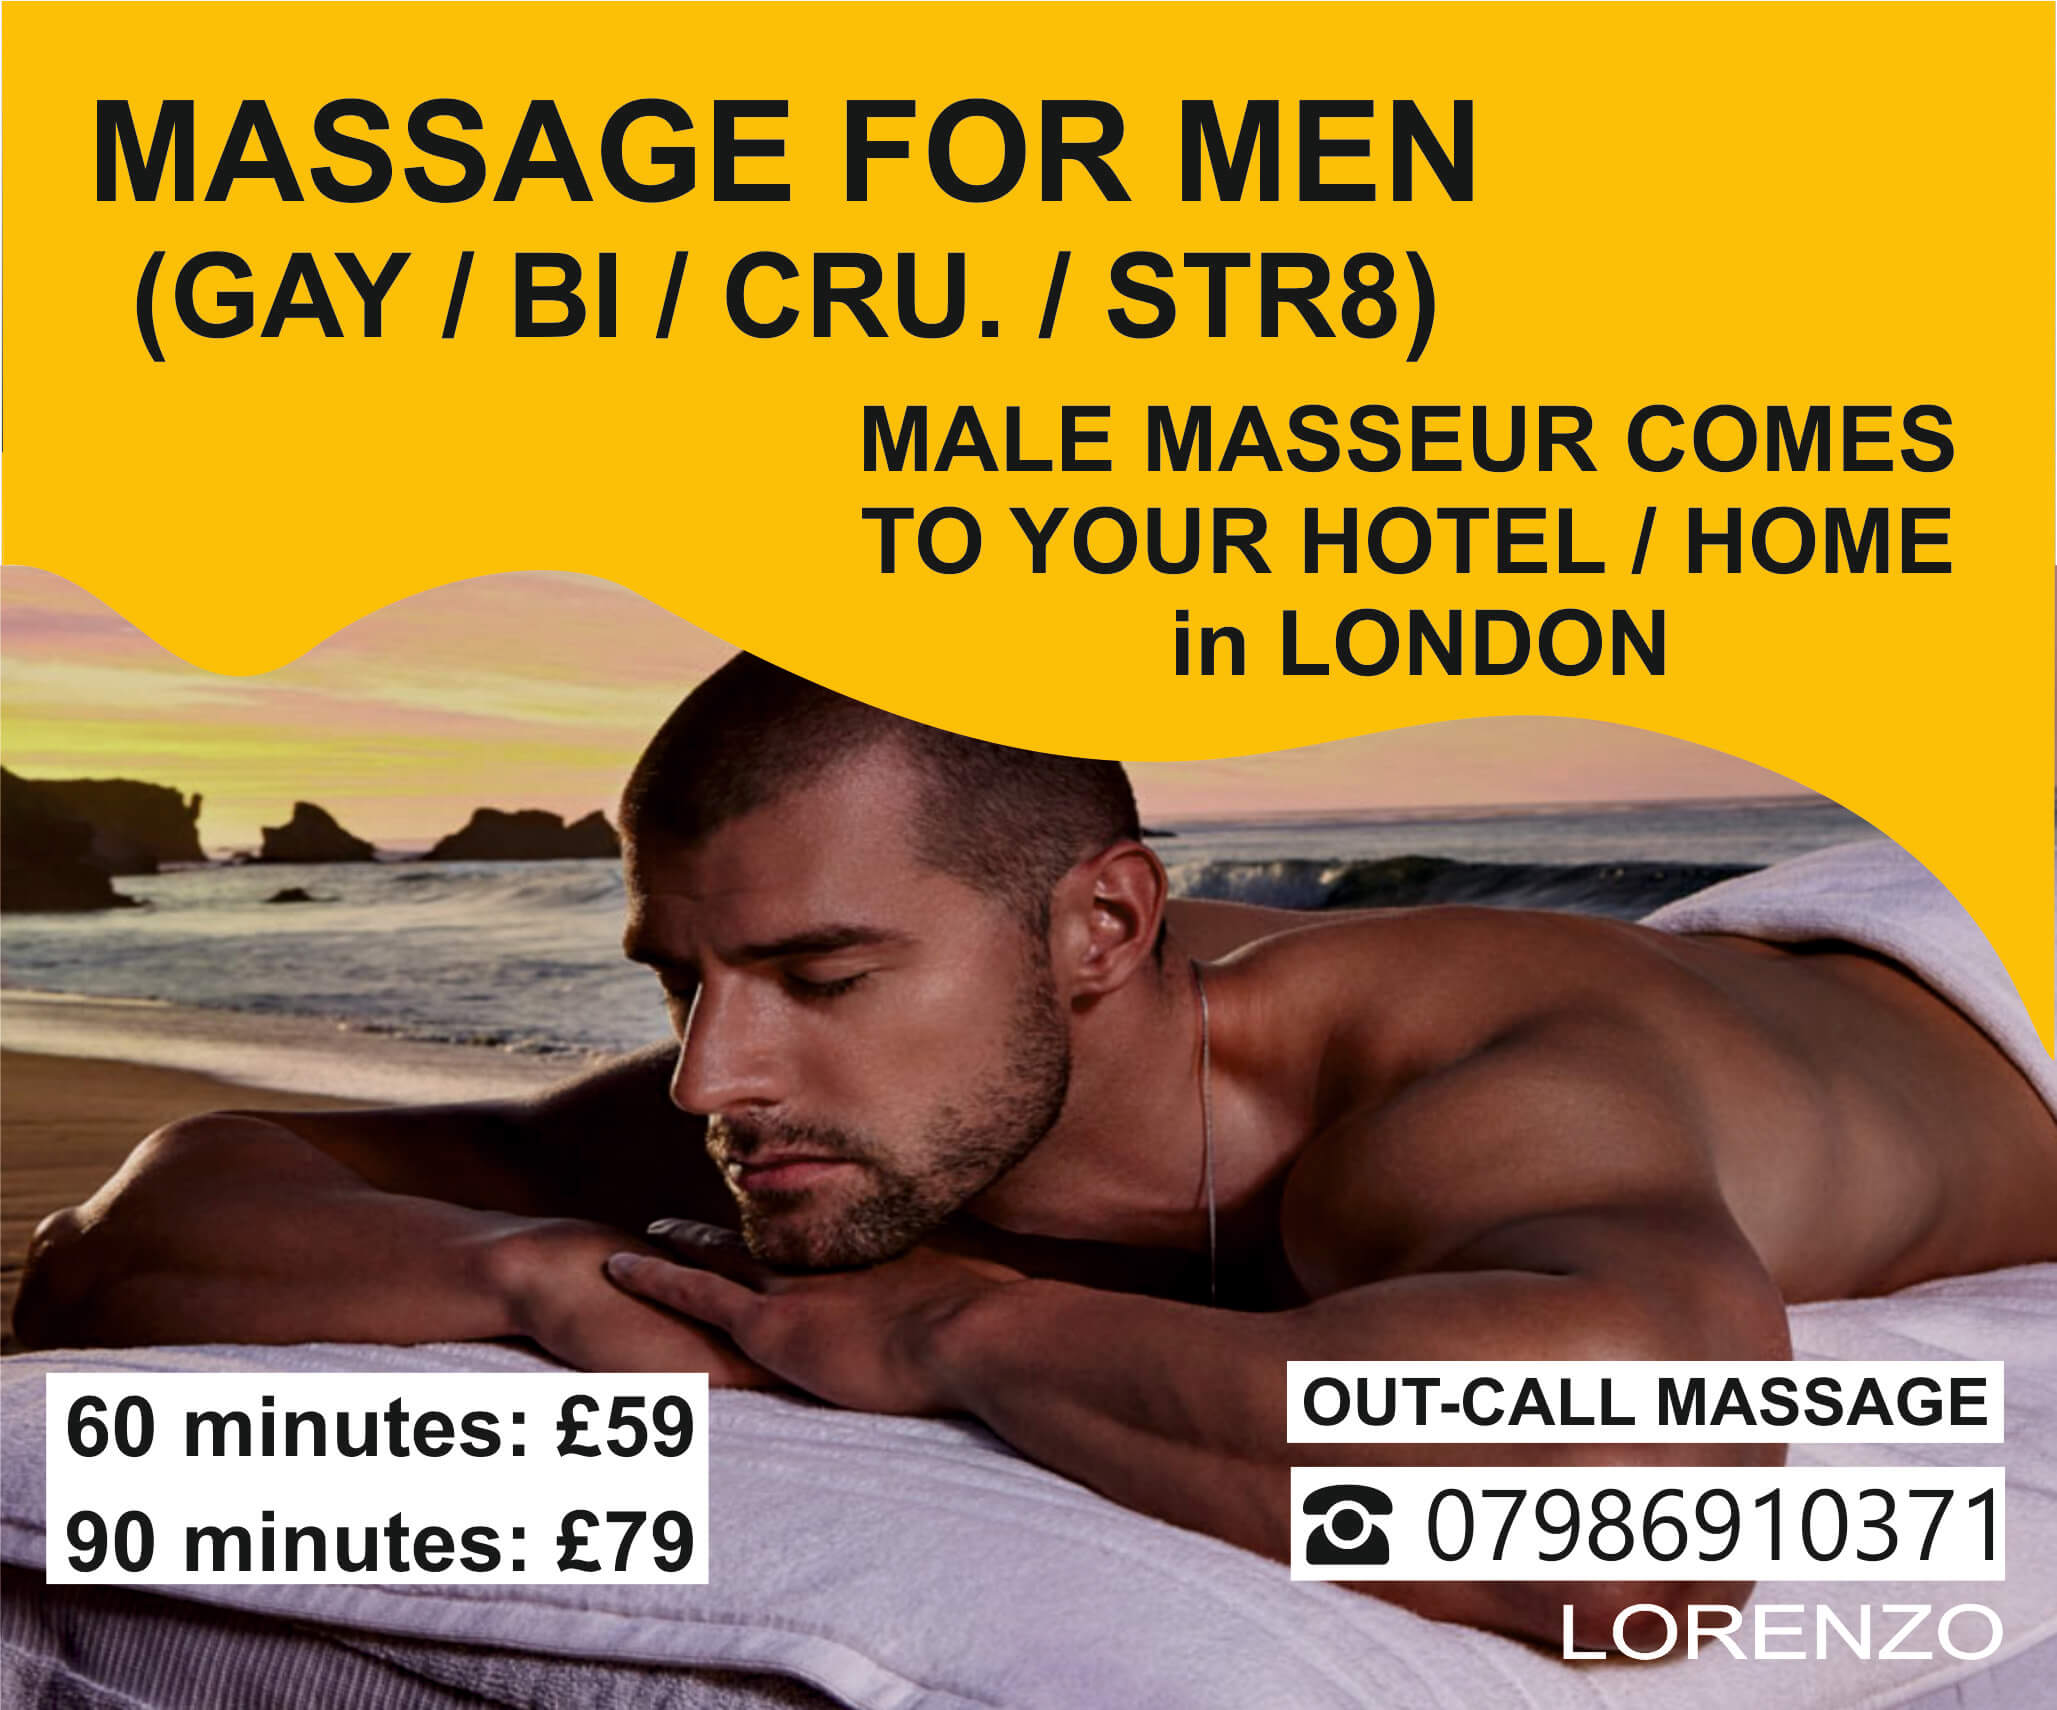 gay male massage london, hotel massage, home massage, lorenzos massage, mobile massage in London